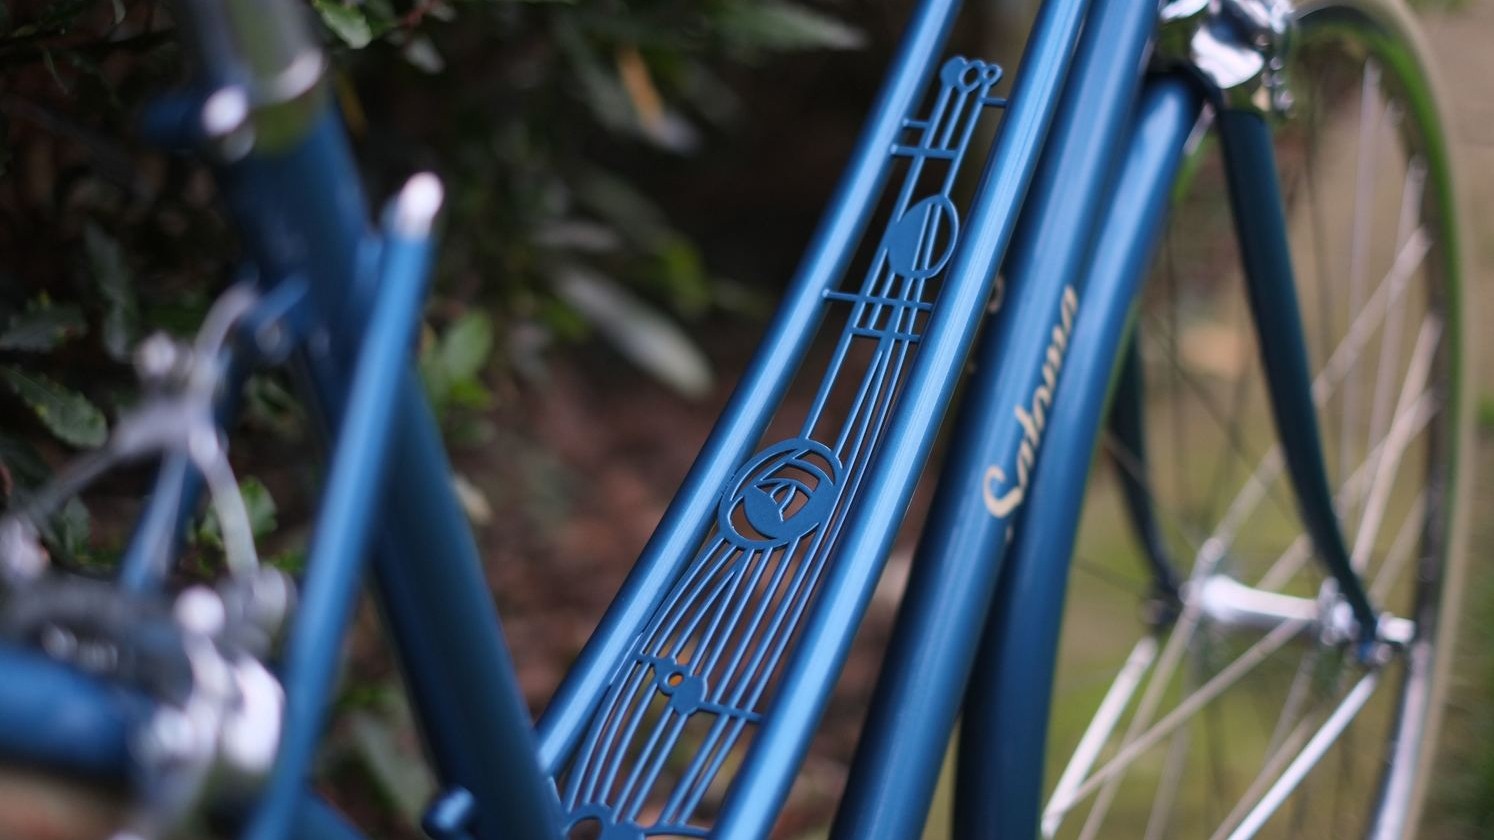 The mixte design leaves space between the top tubes for ornate detailing. On this bike it makes room for a Charles Rennie Mackintosh-inspired art piece